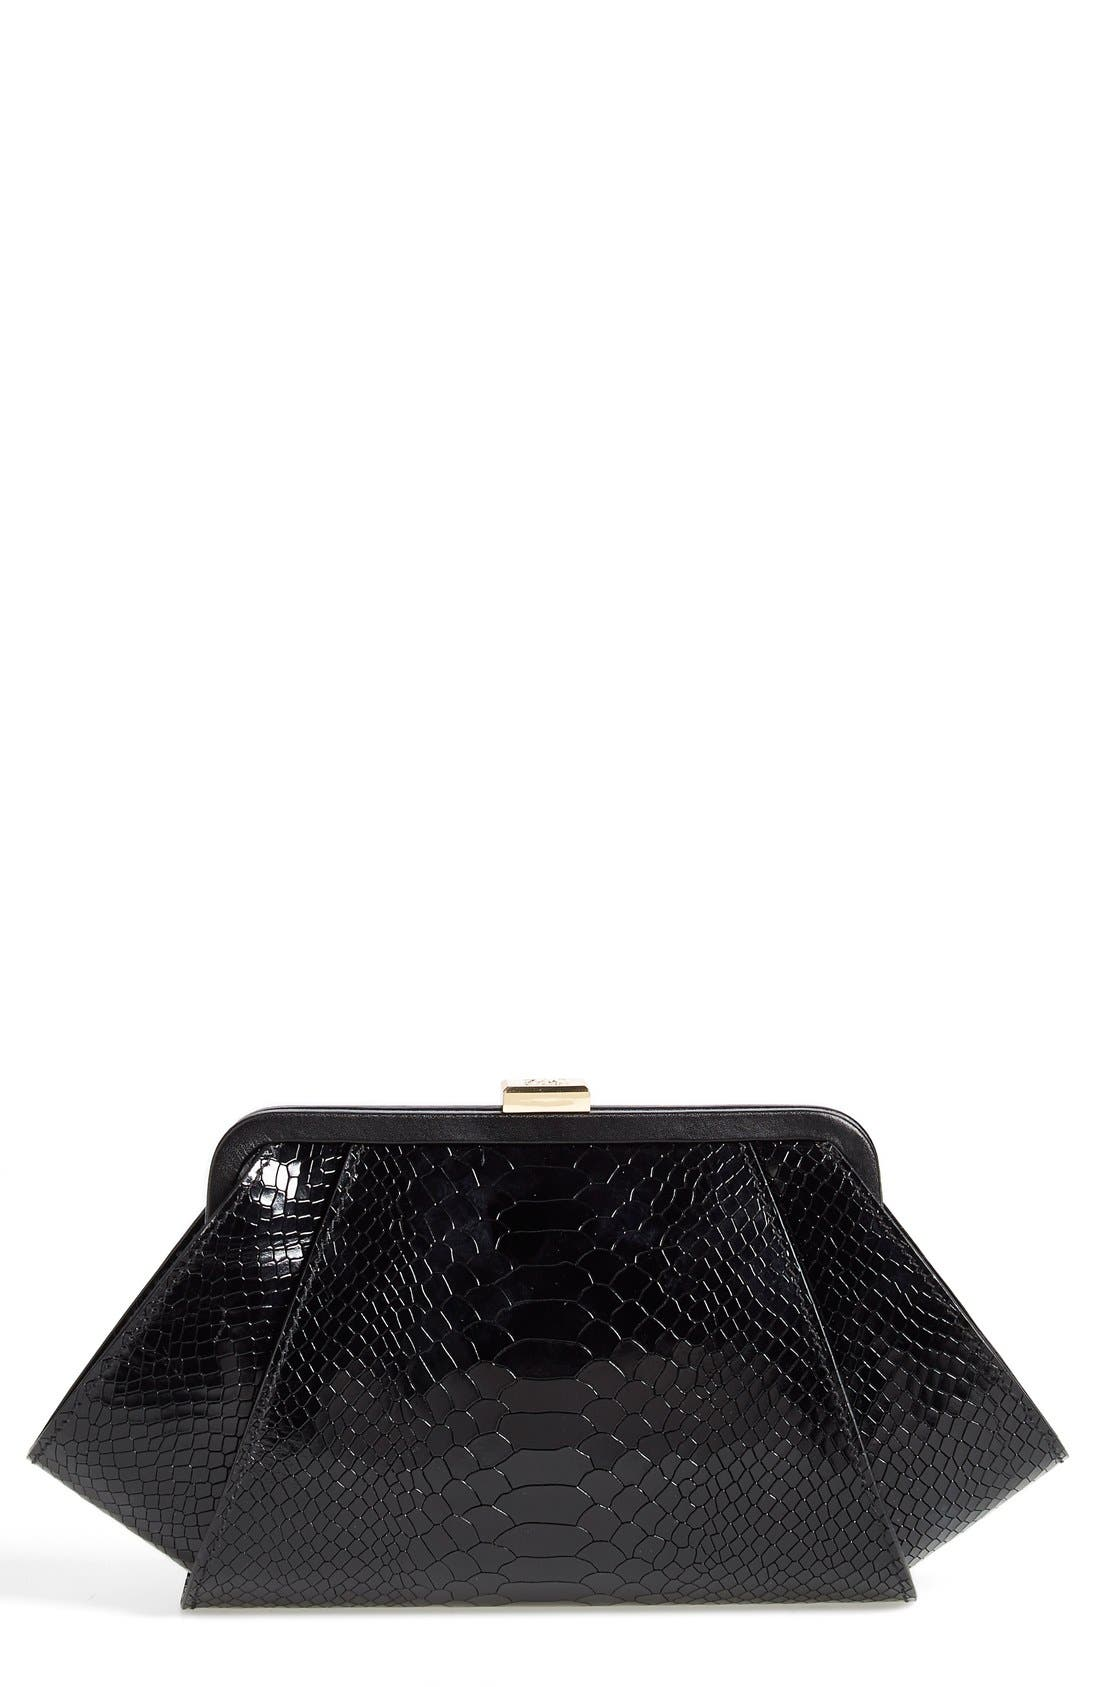 Main Image - ZAC Zac Posen 'Posen' Snake Embossed Leather Clutch